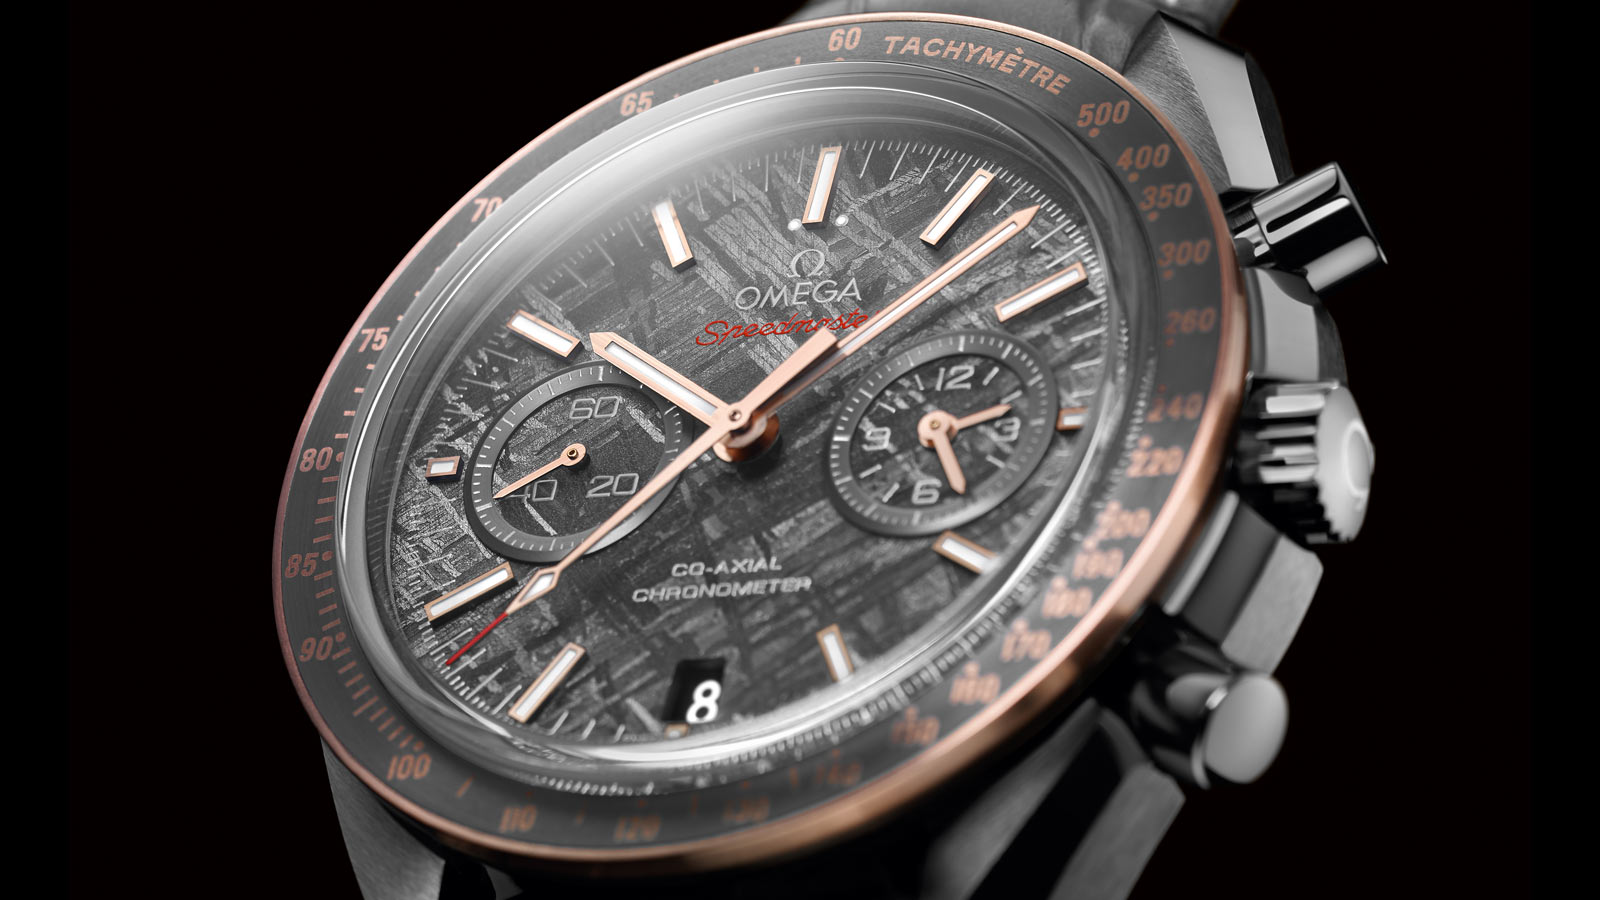 Speedmaster ムーンウォッチ Moonwatch Omega Co‑Axial Chronograph 44.25 mm - 311.63.44.51.99.001 - ビュー 1